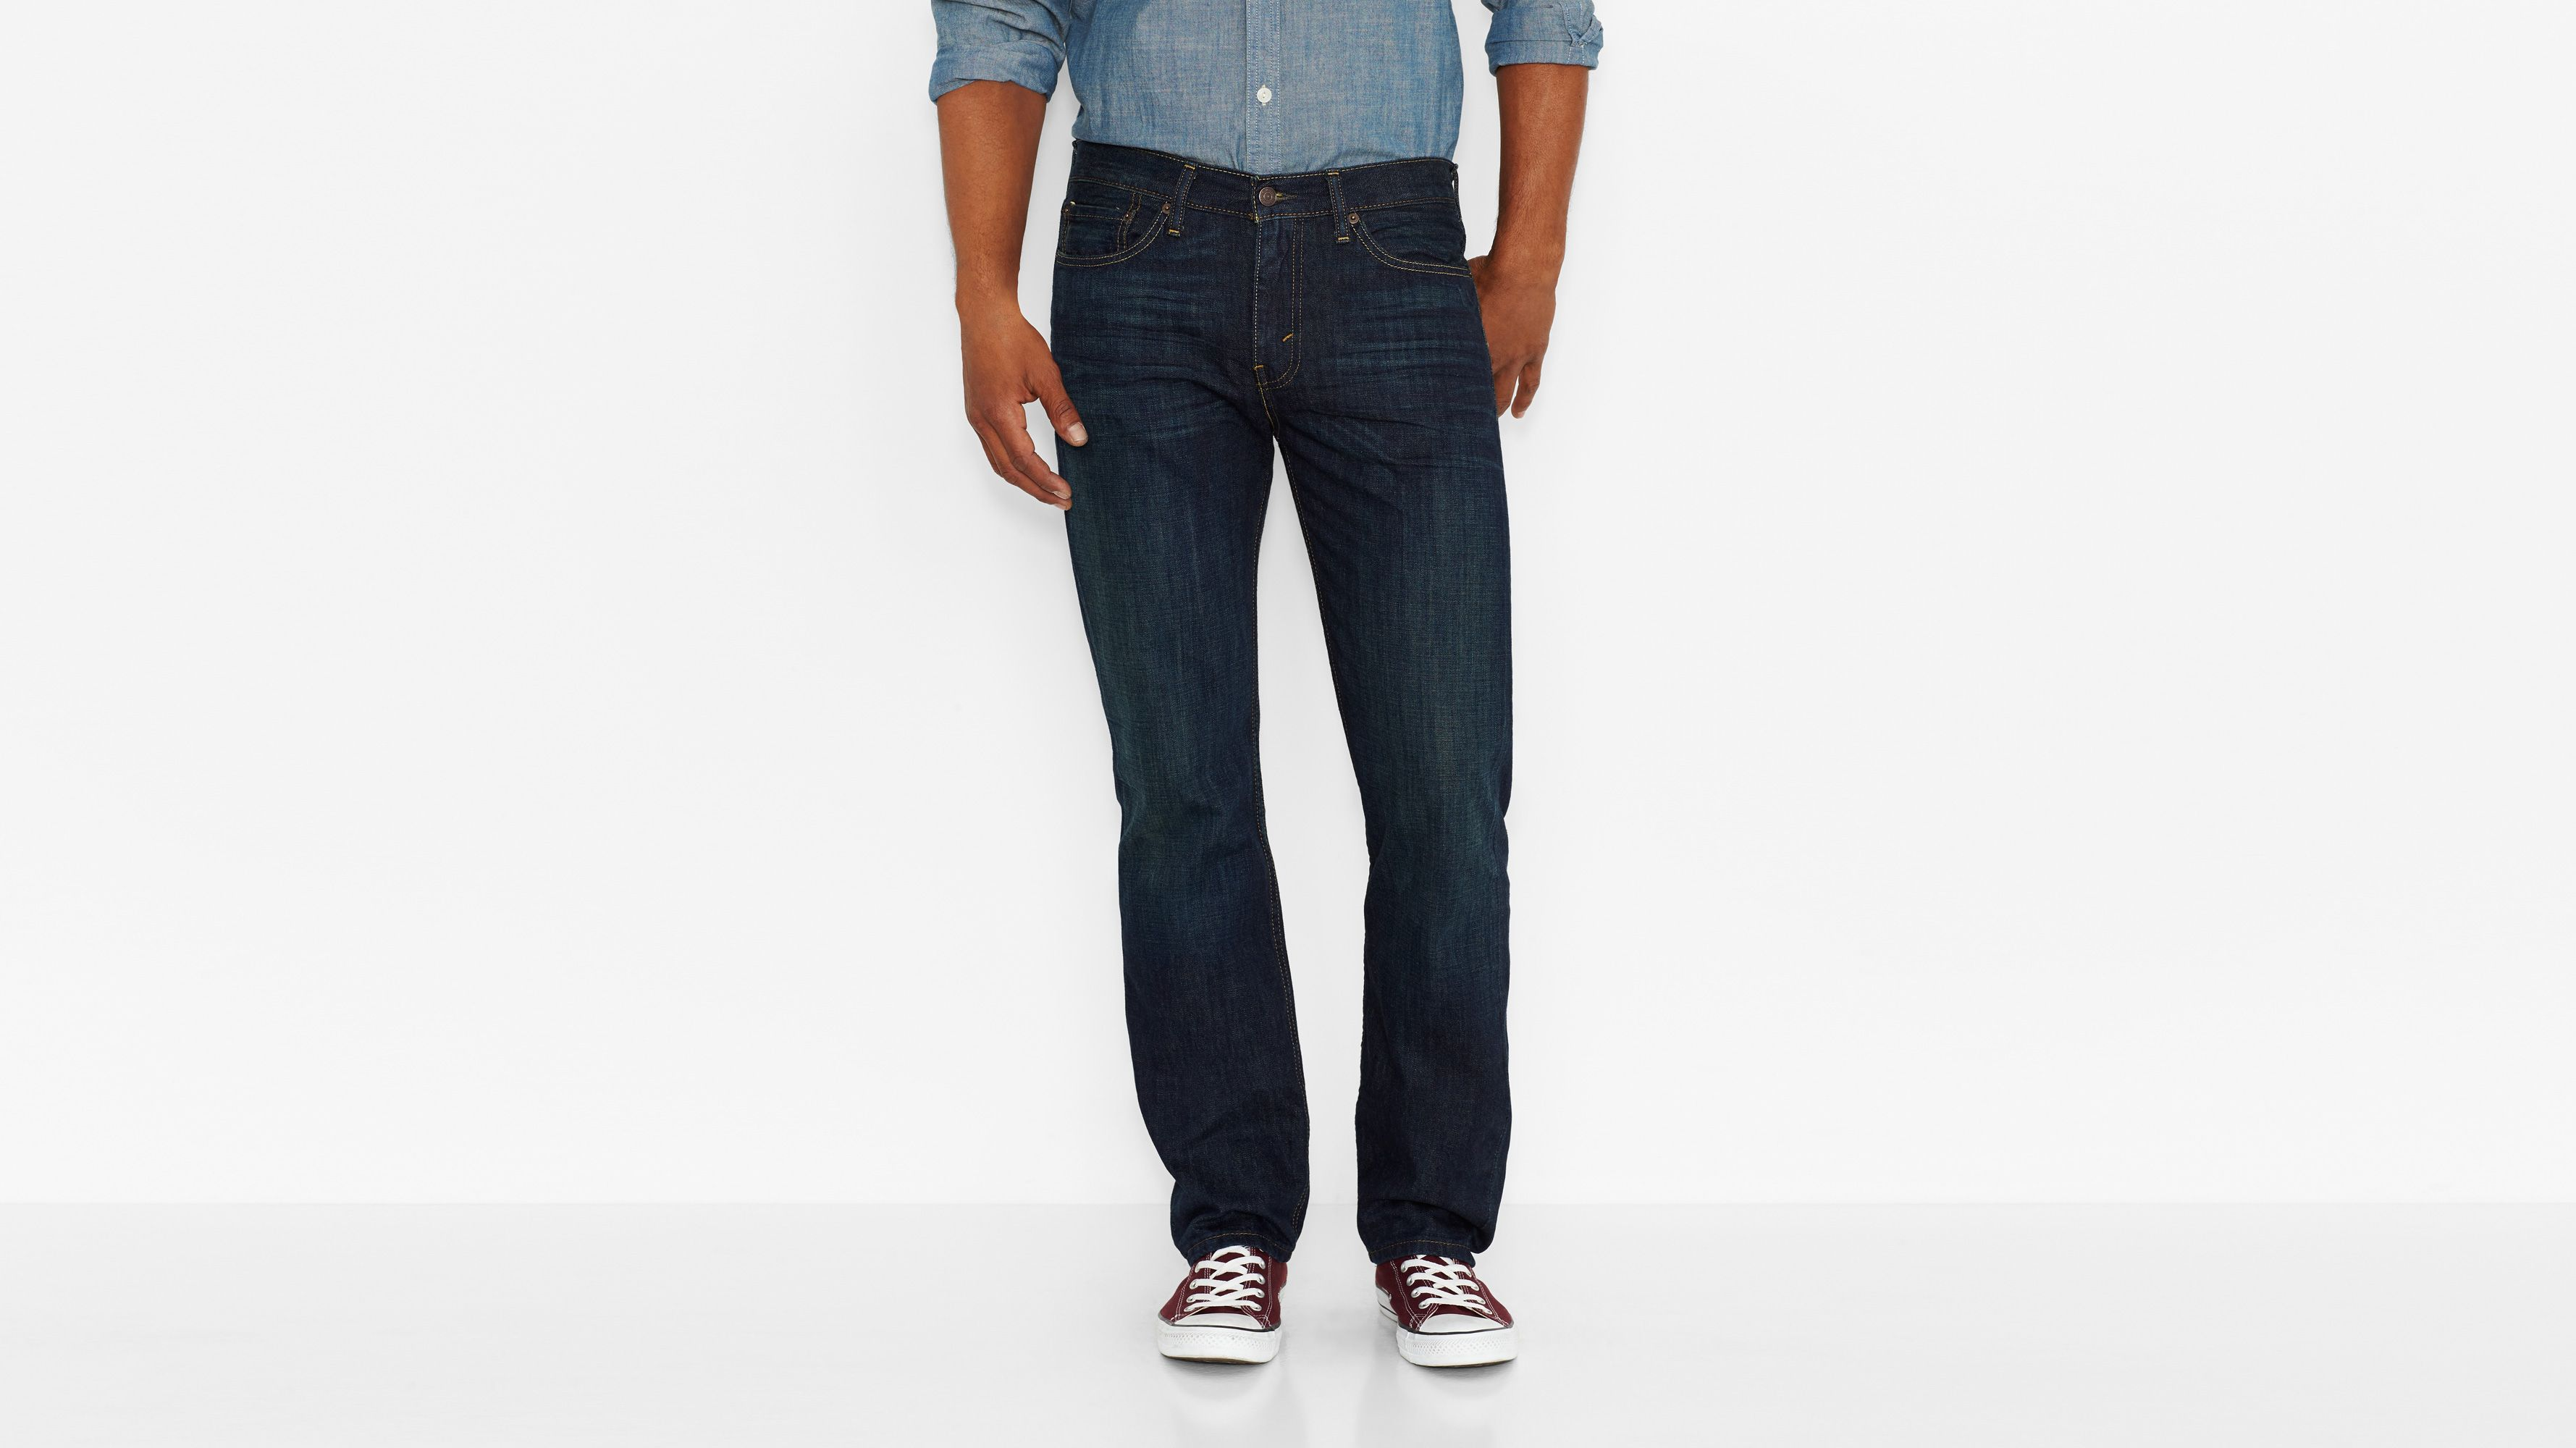 514™ Straight Fit Jeans - Kale